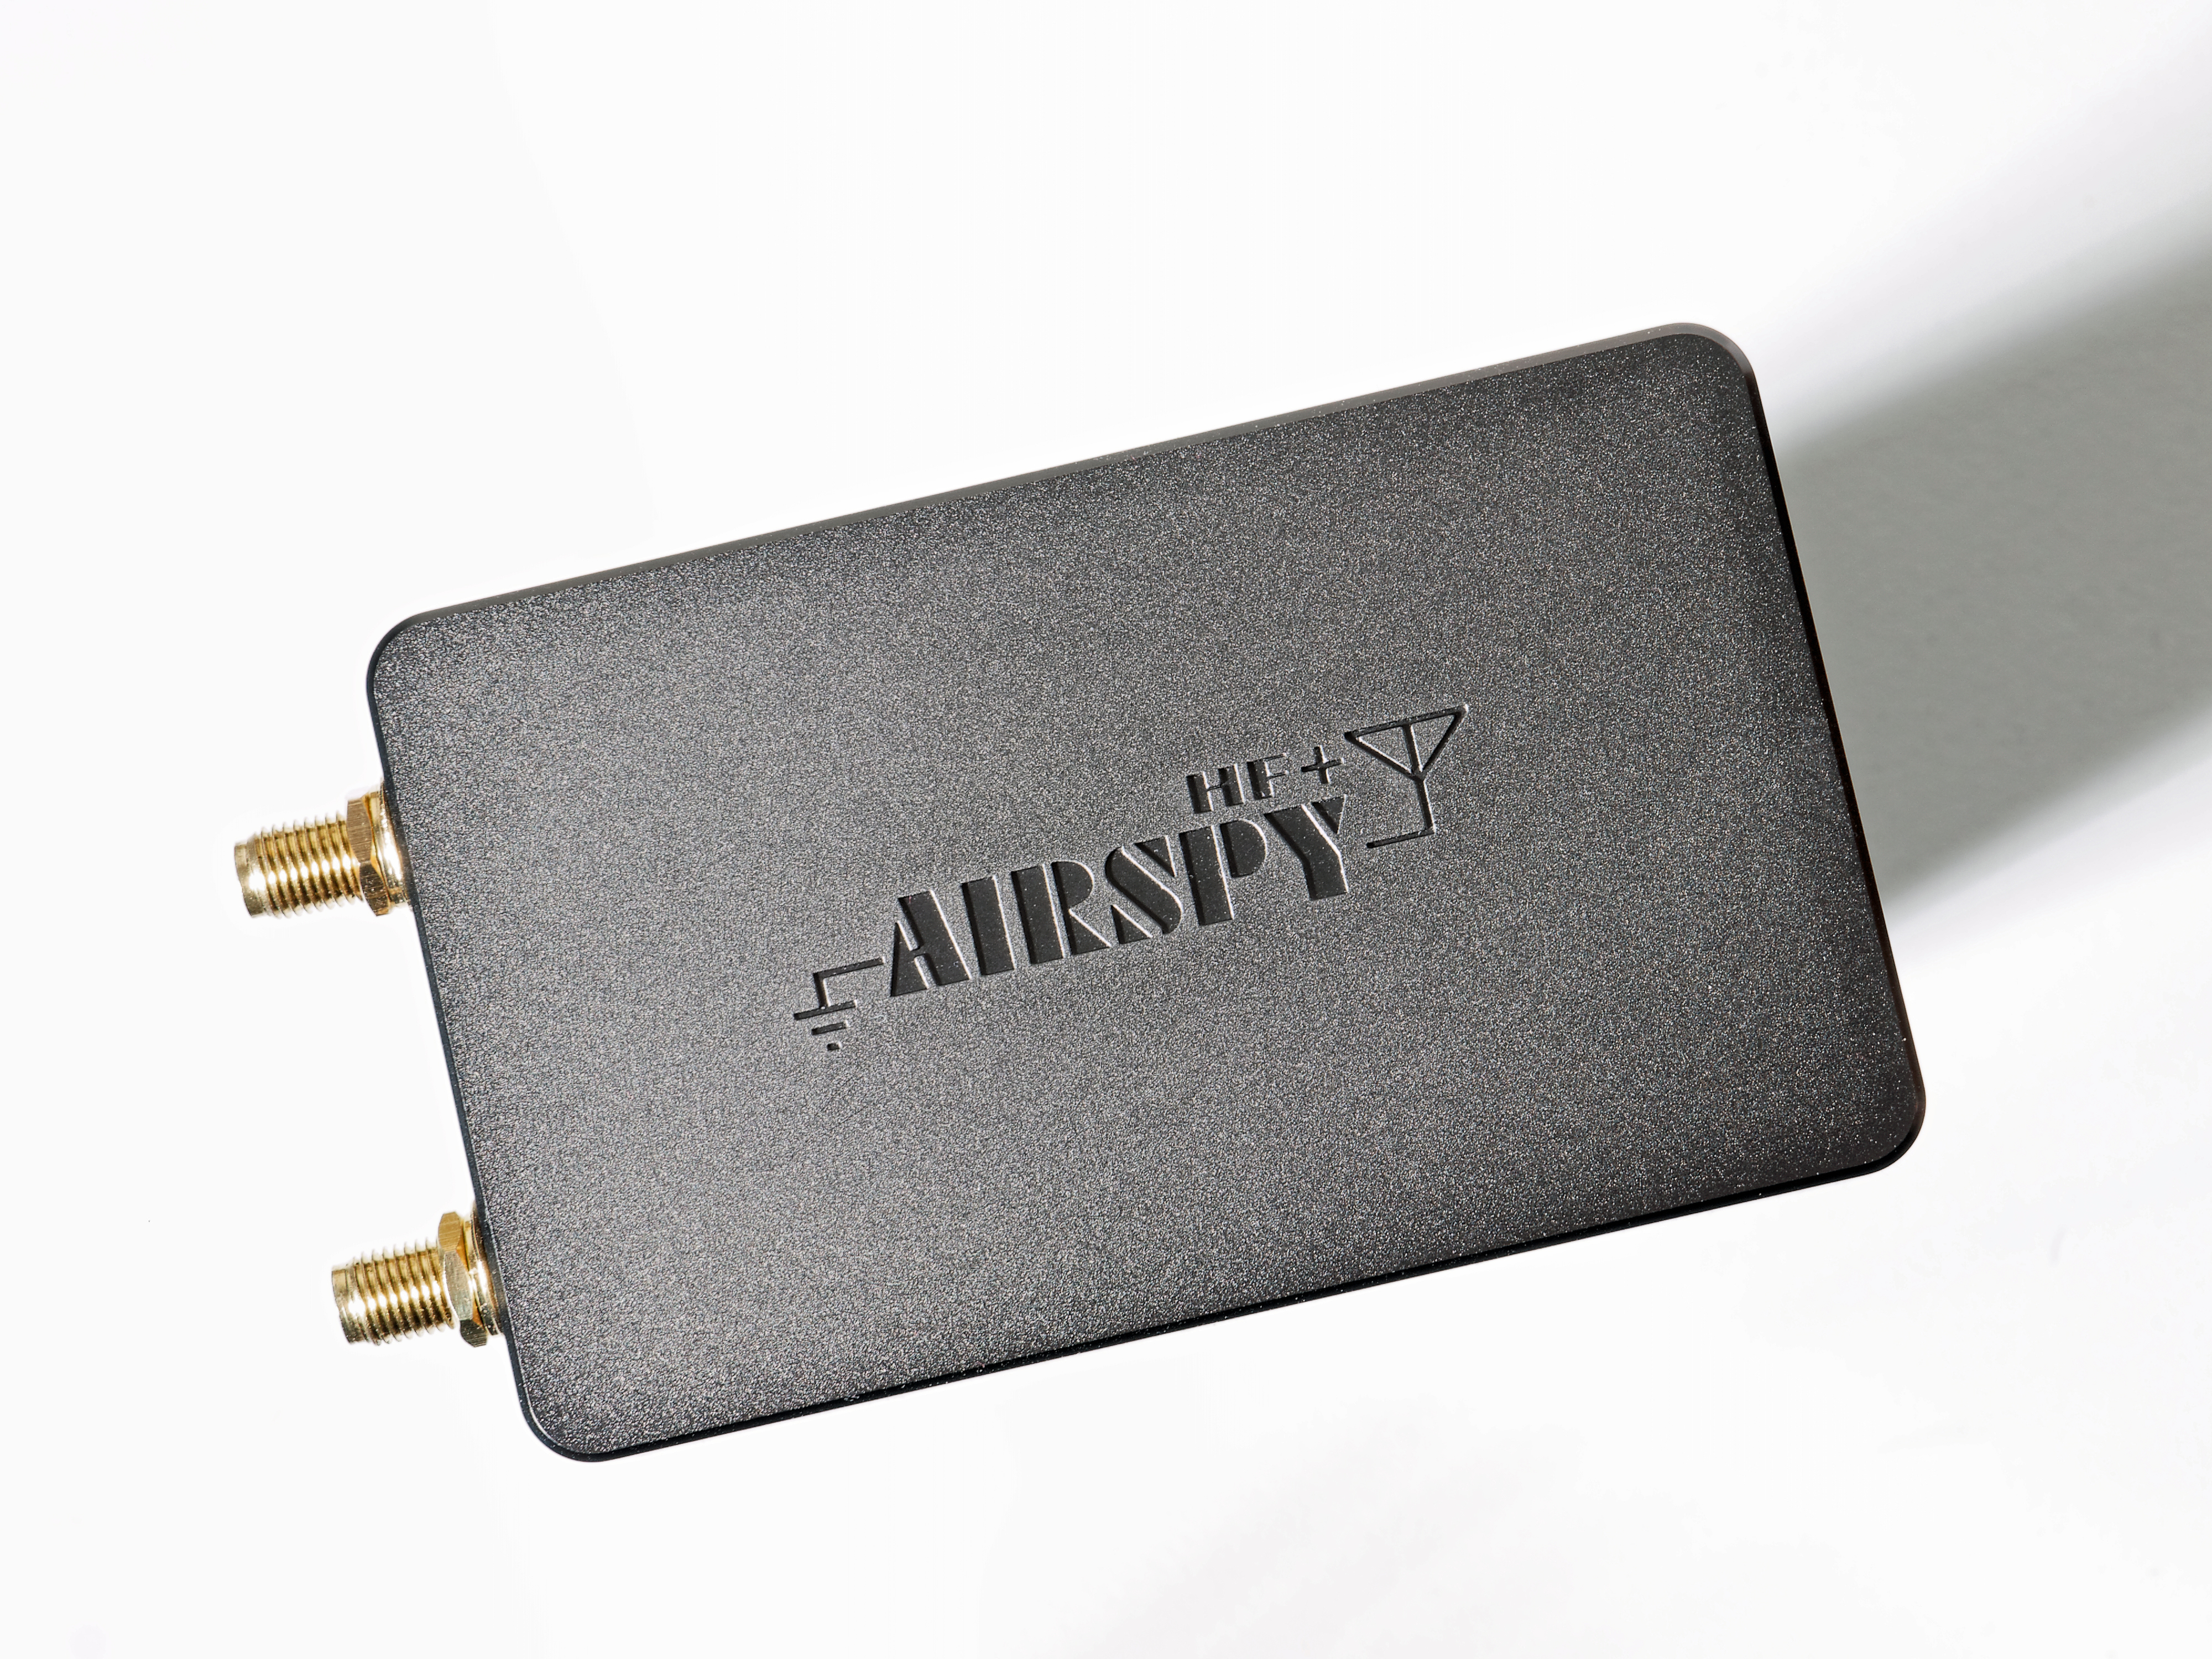 Airspy HF+: What you hear, is what you get | Nils